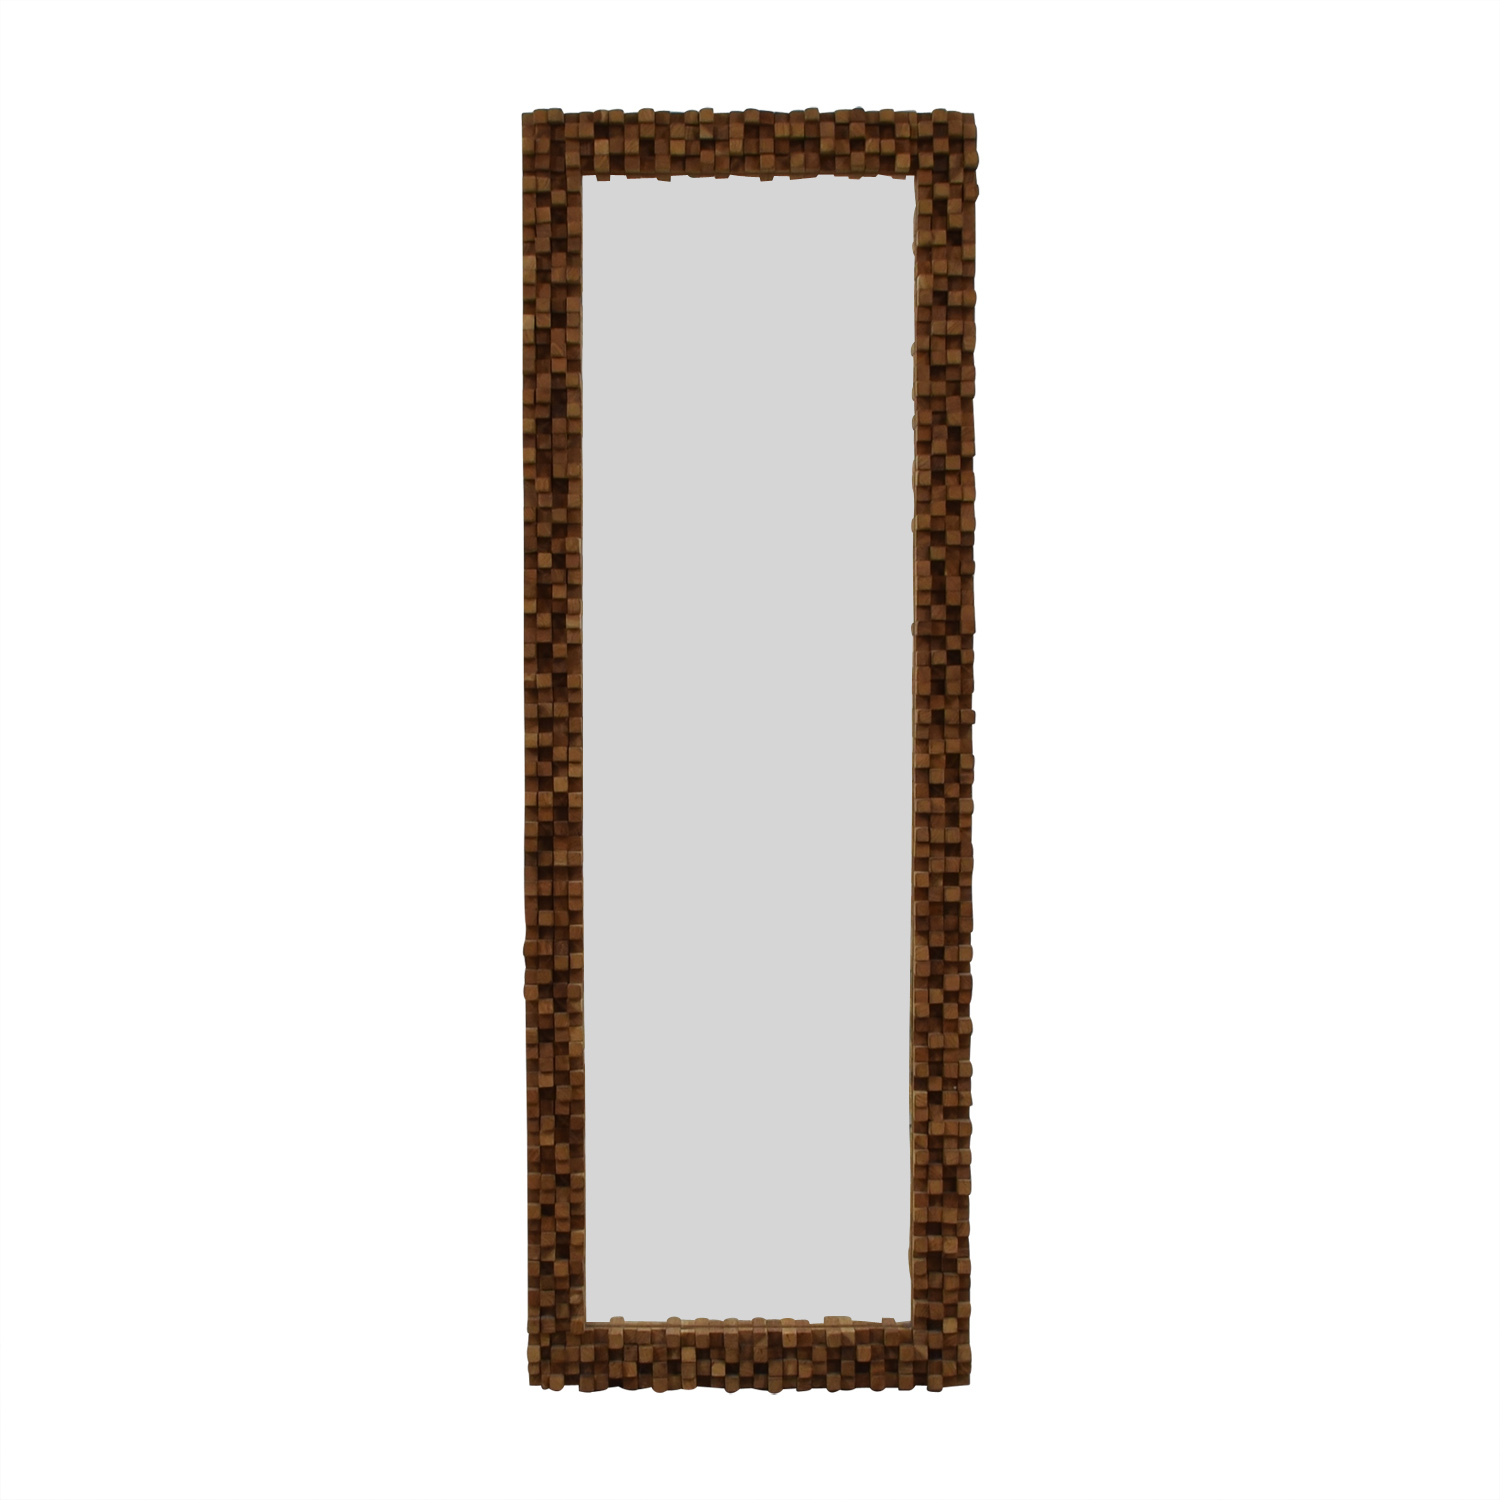 Tozai Home Tozai Home Float Wood Framed Floor Mirror dimensions